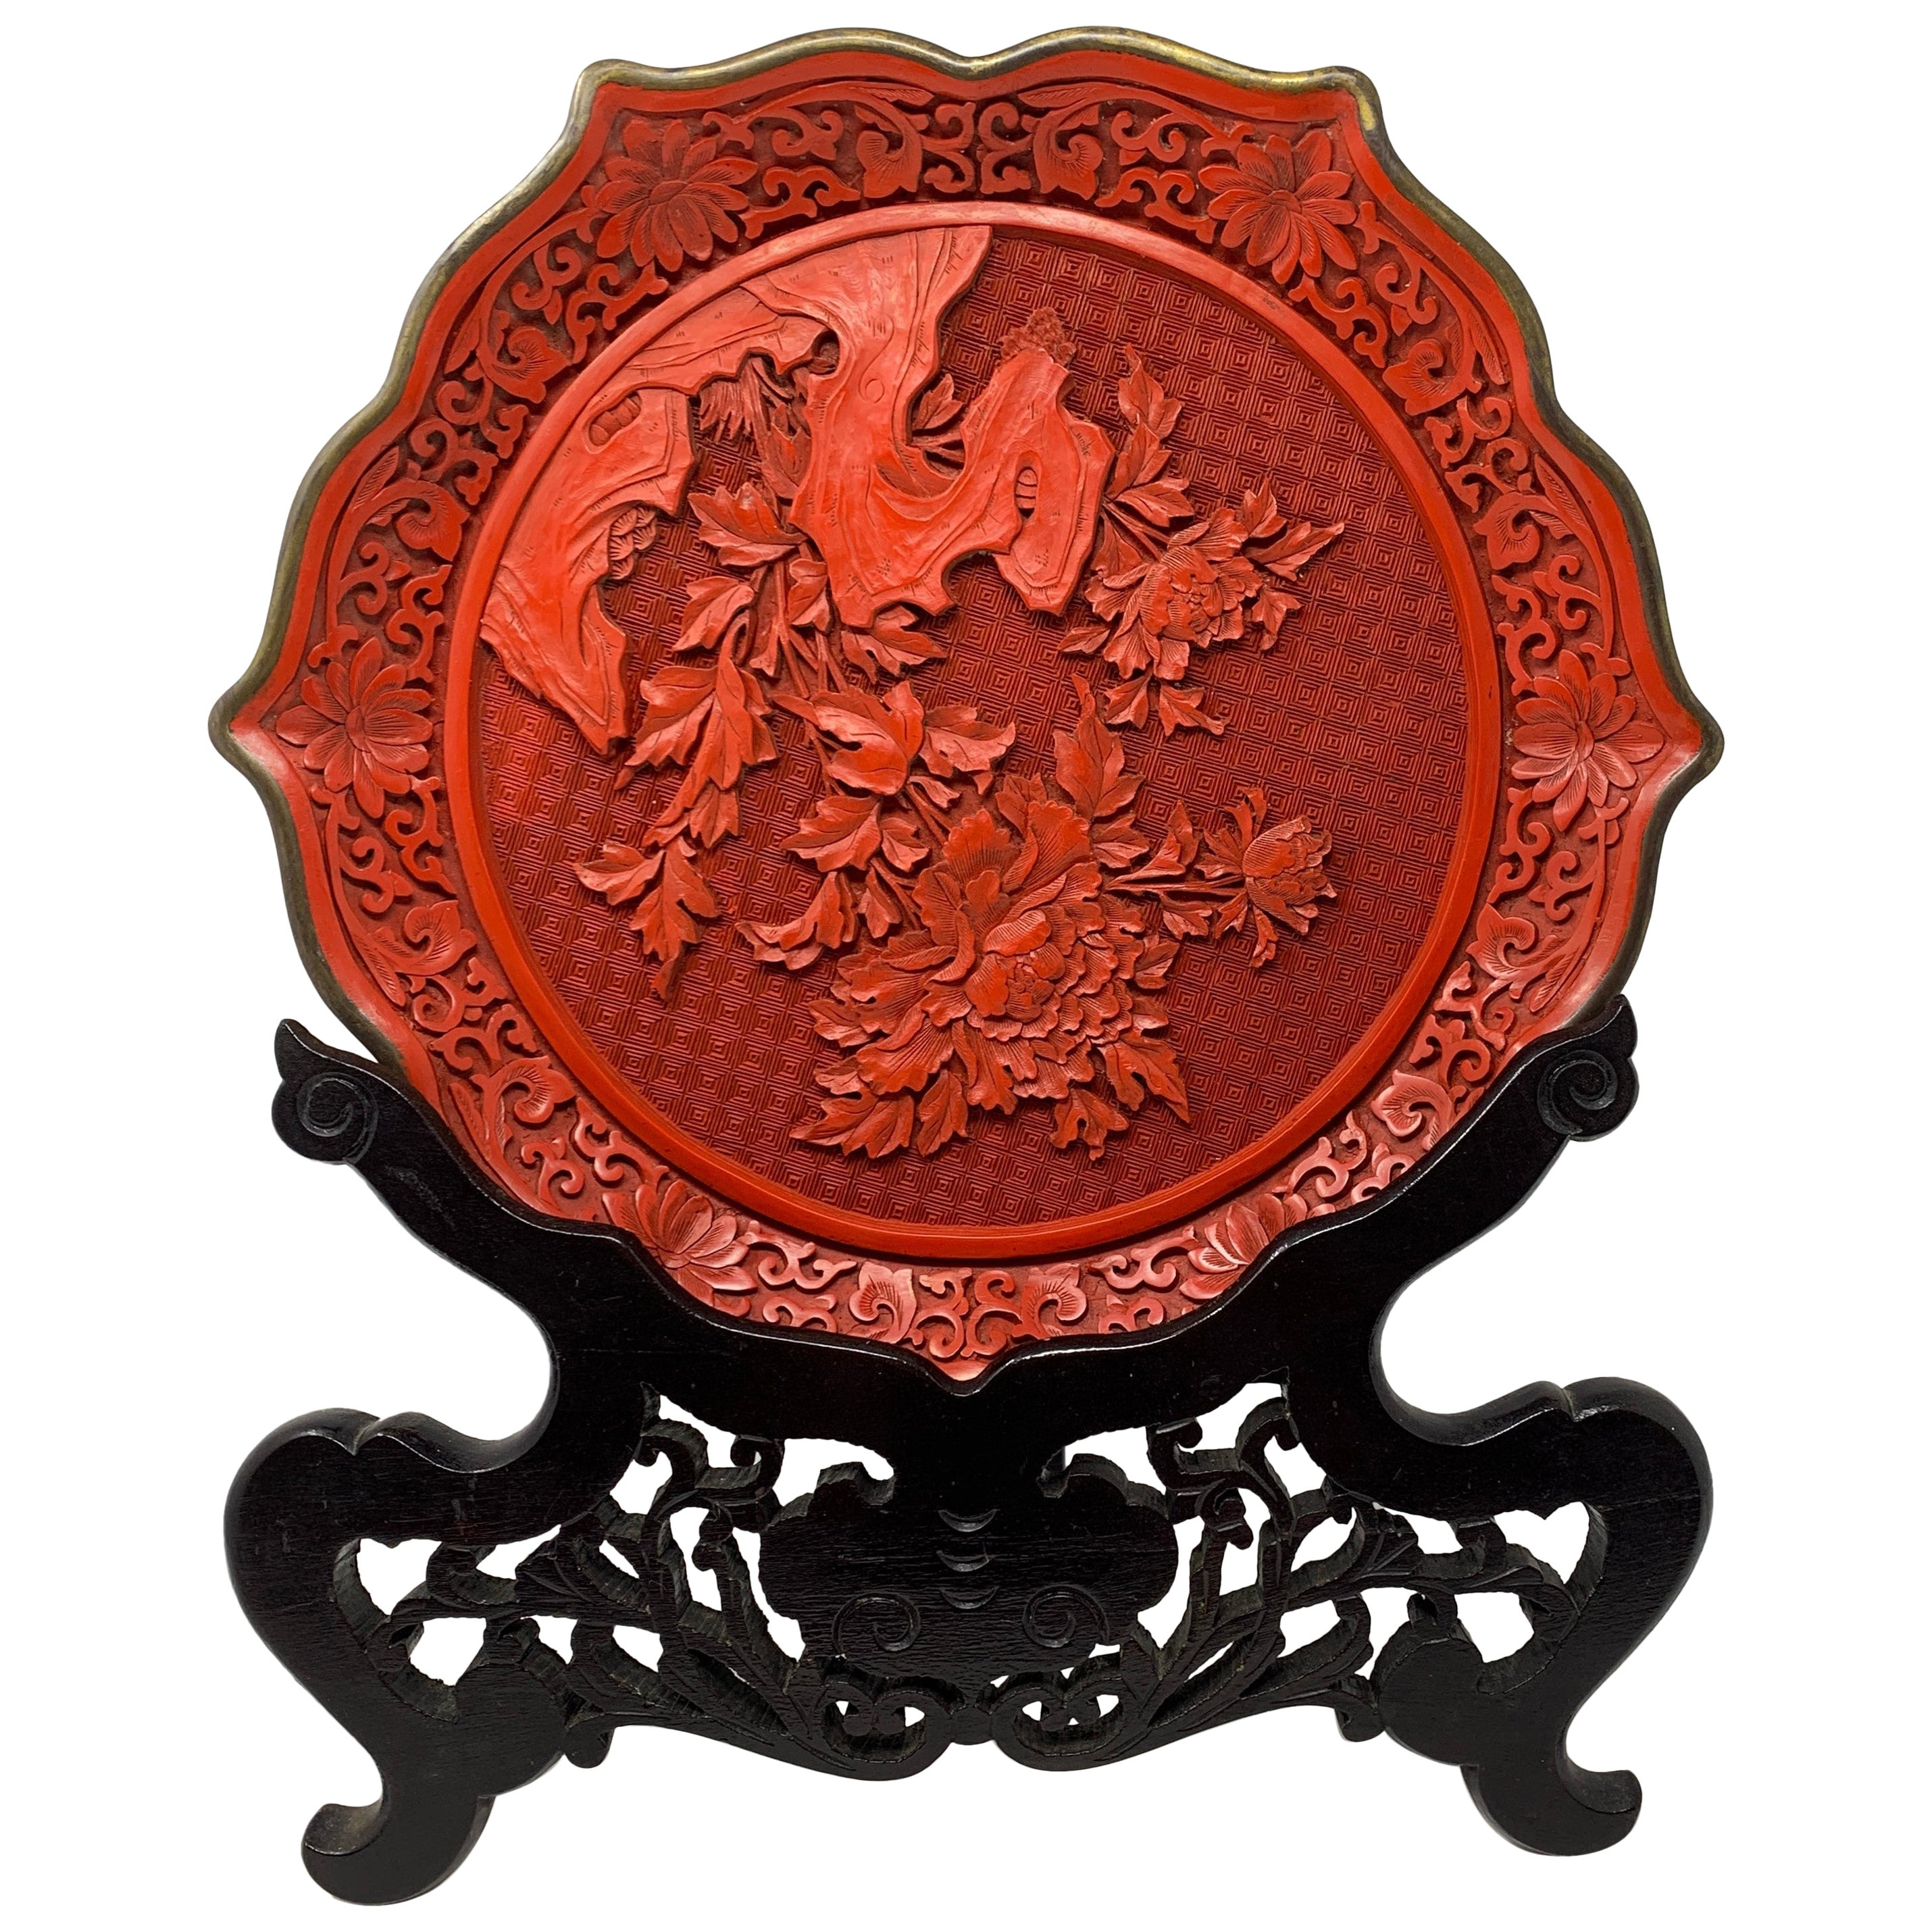 Antique Chinese Cinnabar Rare Red Lacquer Carved in Relief, circa 1890-1910